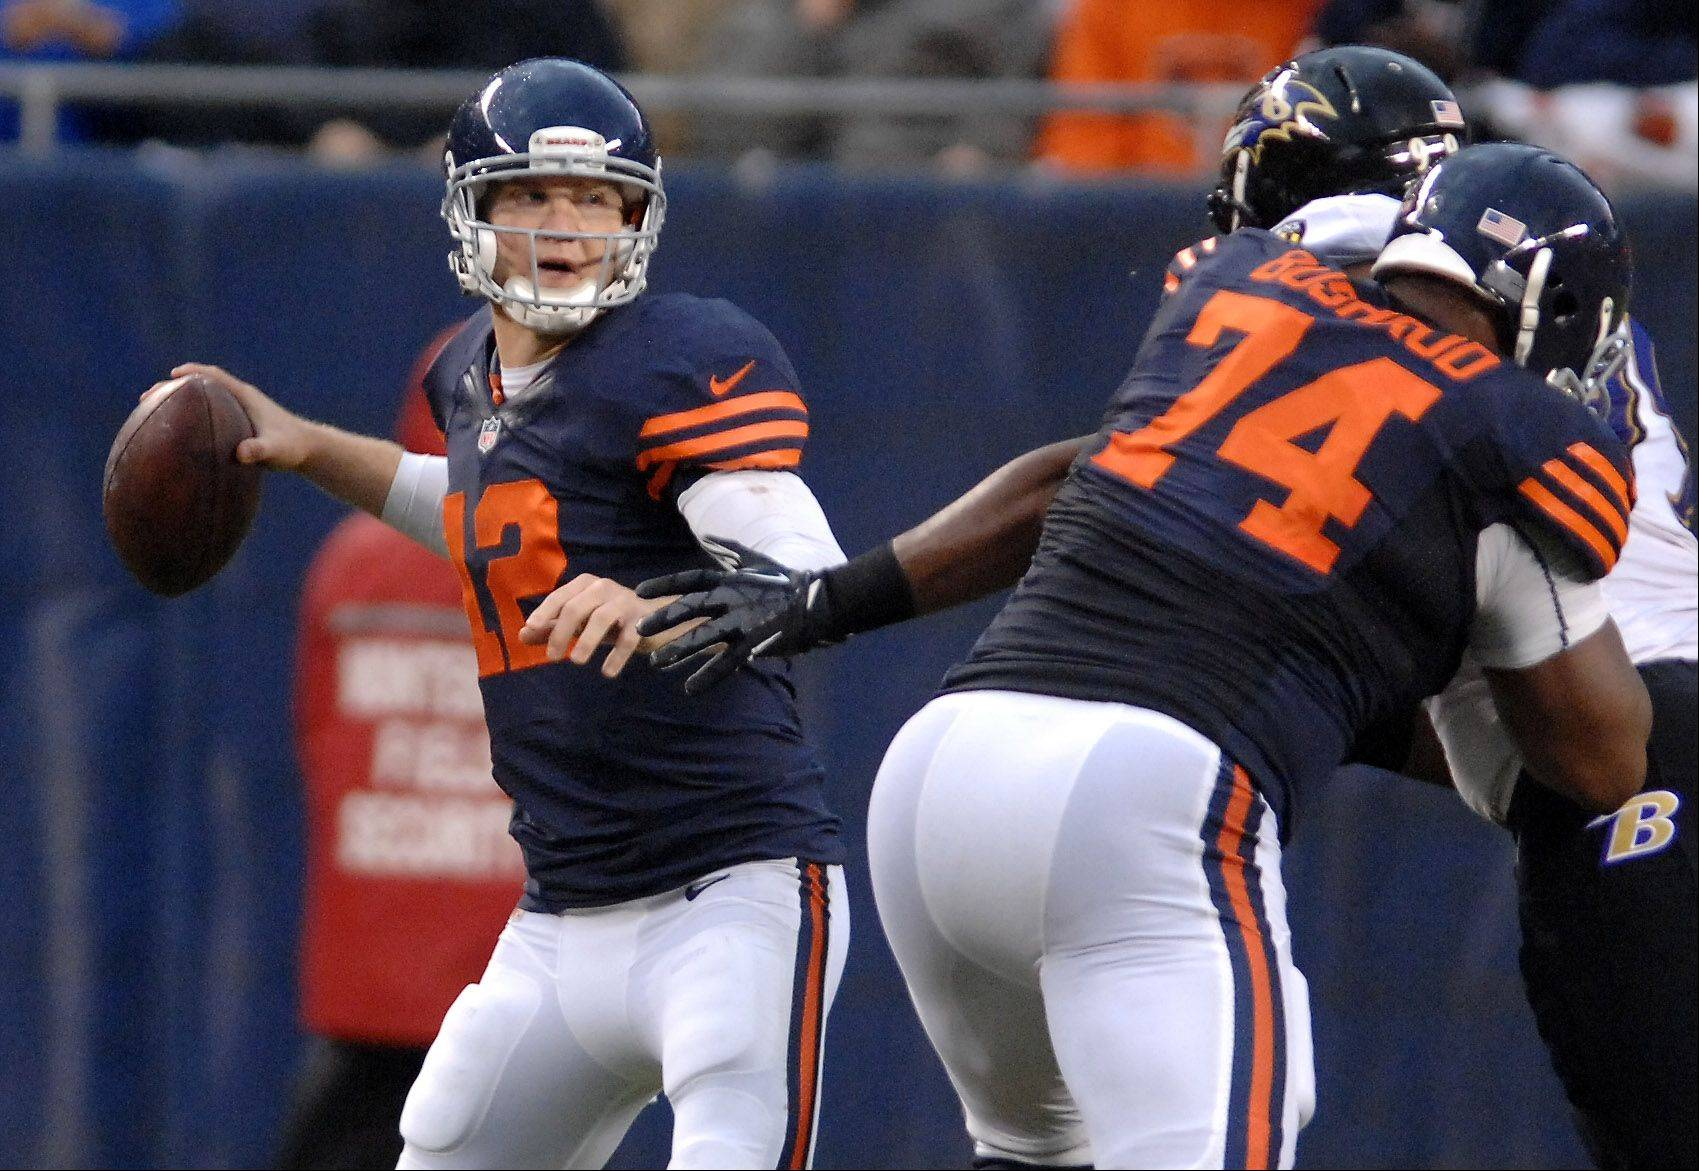 Chicago Bears quarterback Josh McCown (12) looks to pass during Sunday�s game in Chicago.